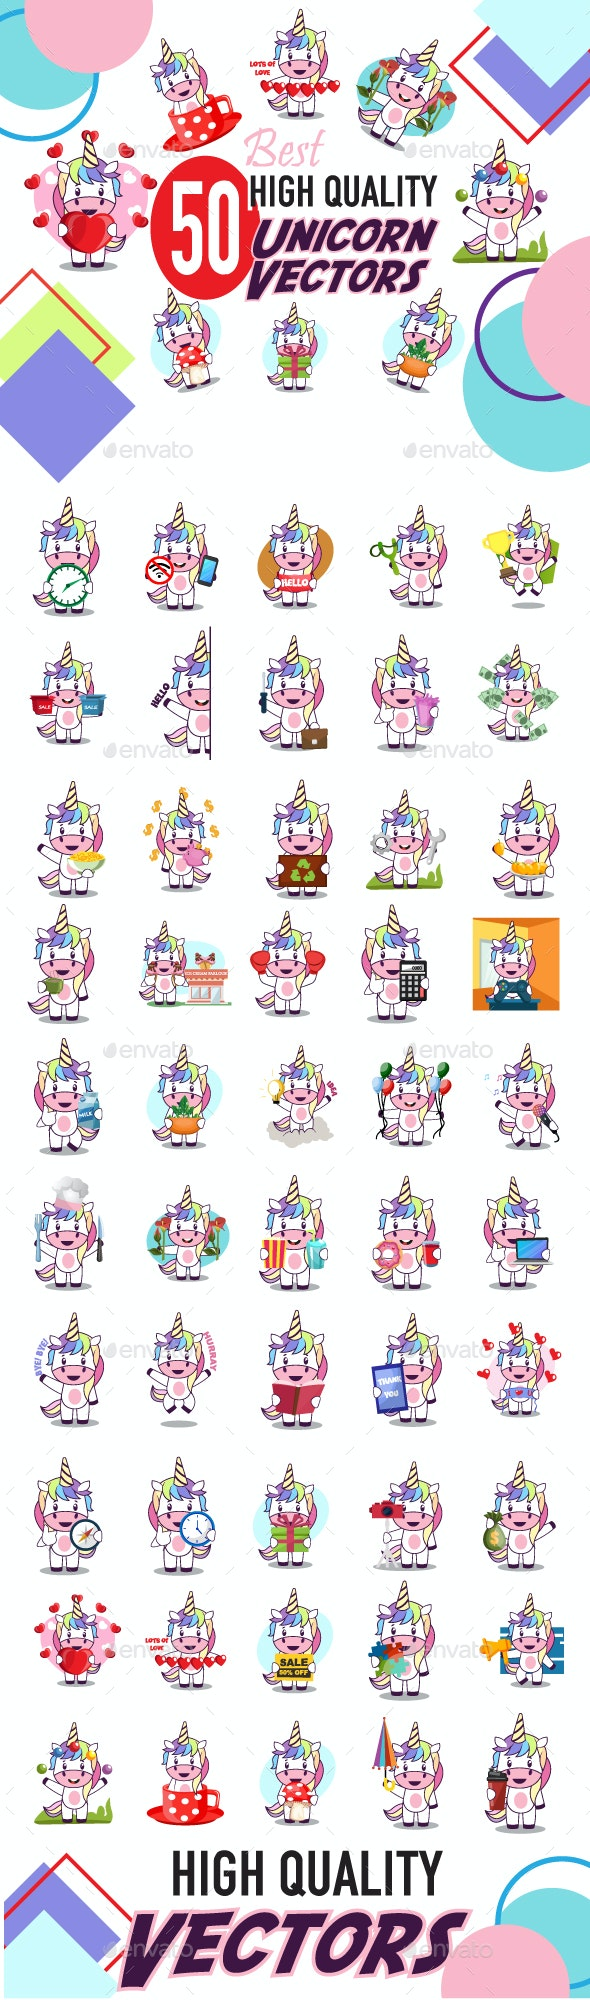 50x Unicorn Character Vector Pack - Animals Characters